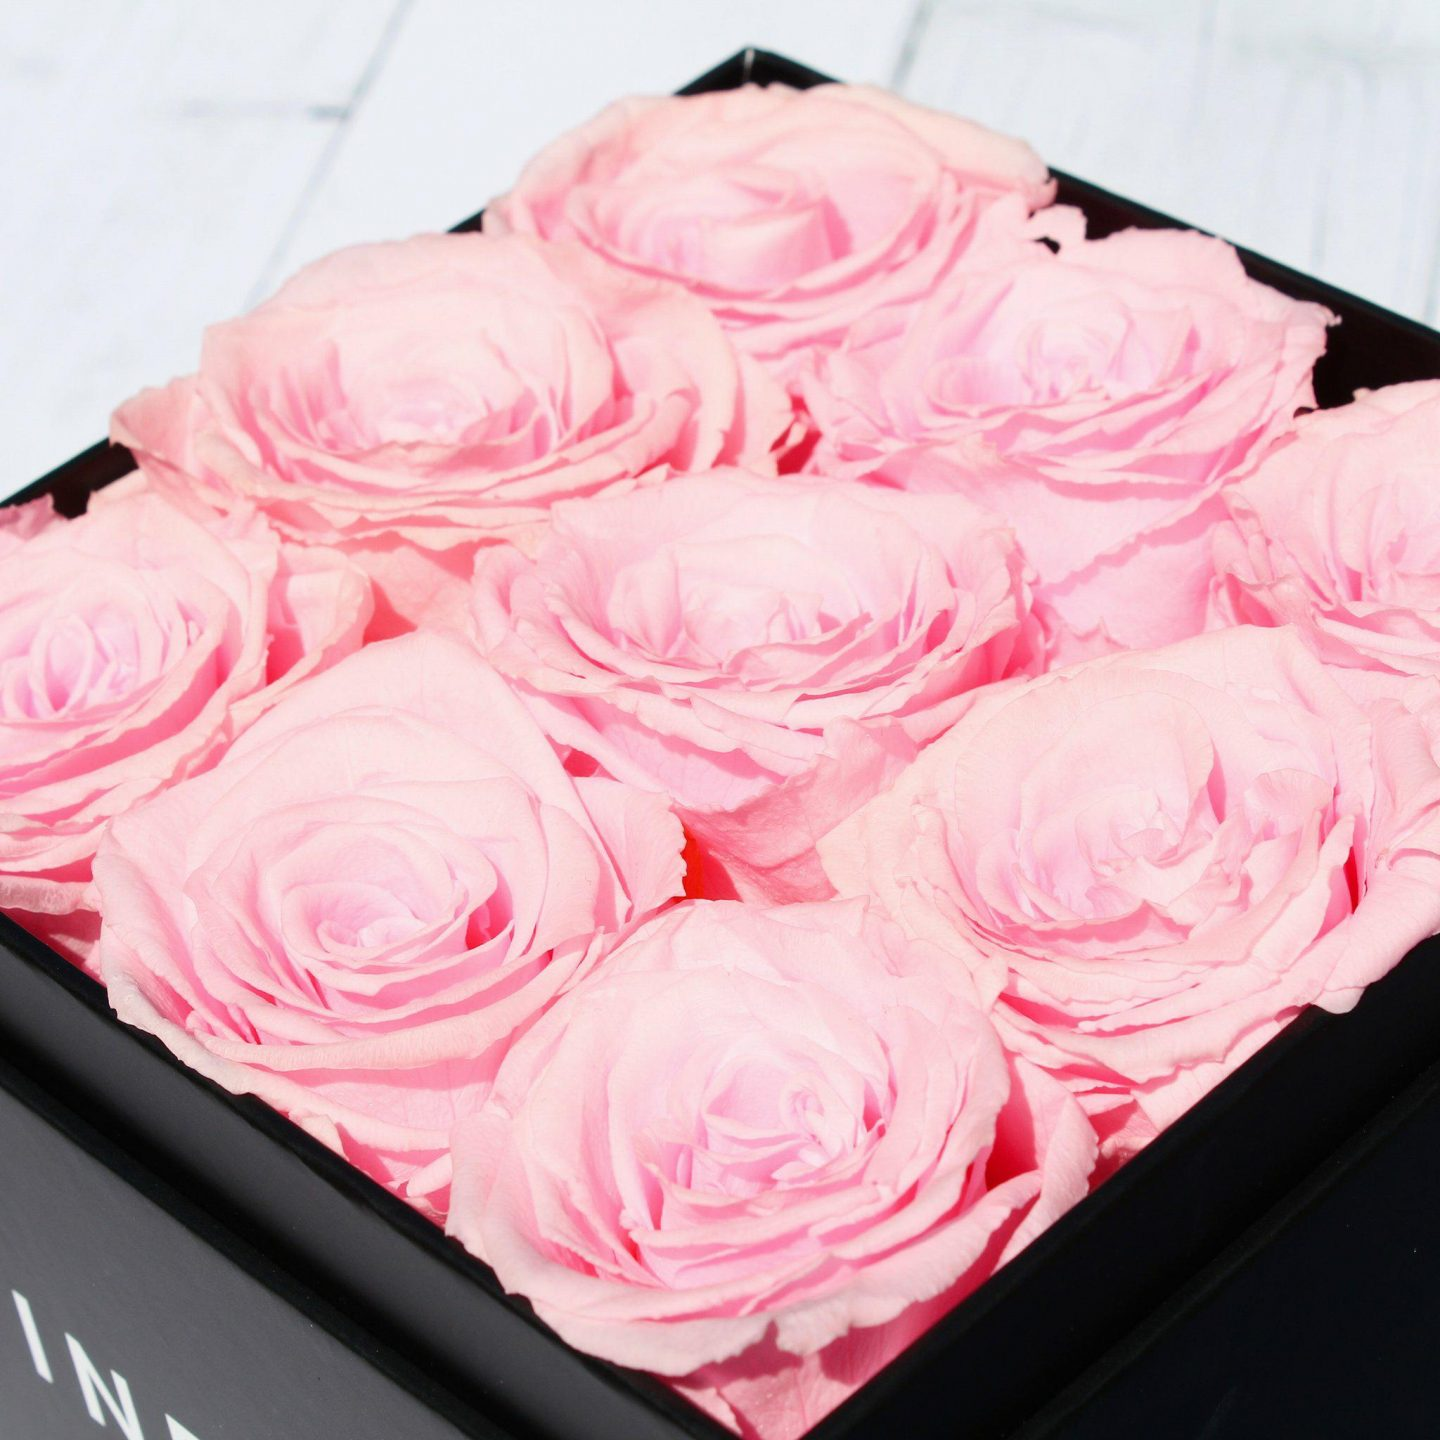 INFINI London | Real Roses That Last An Entire Year?